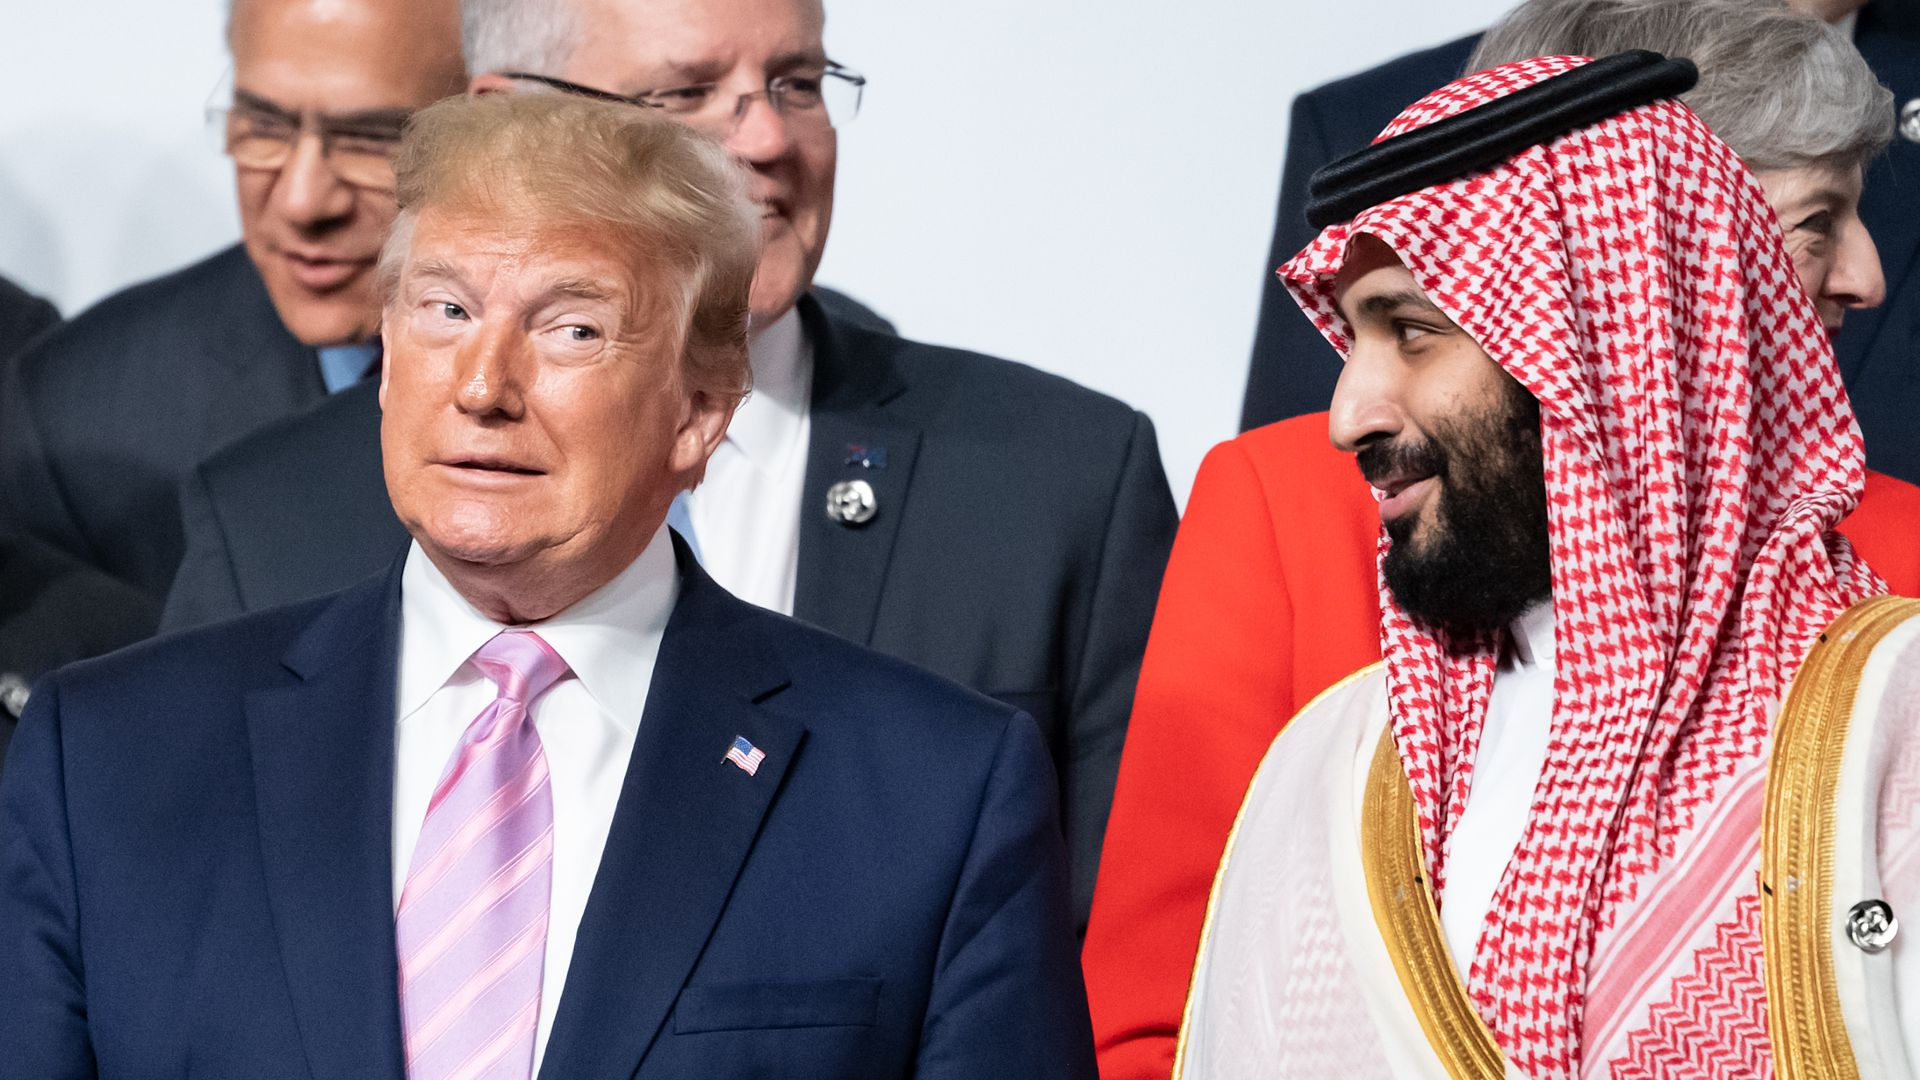 Trump and Mohammed bin Salman